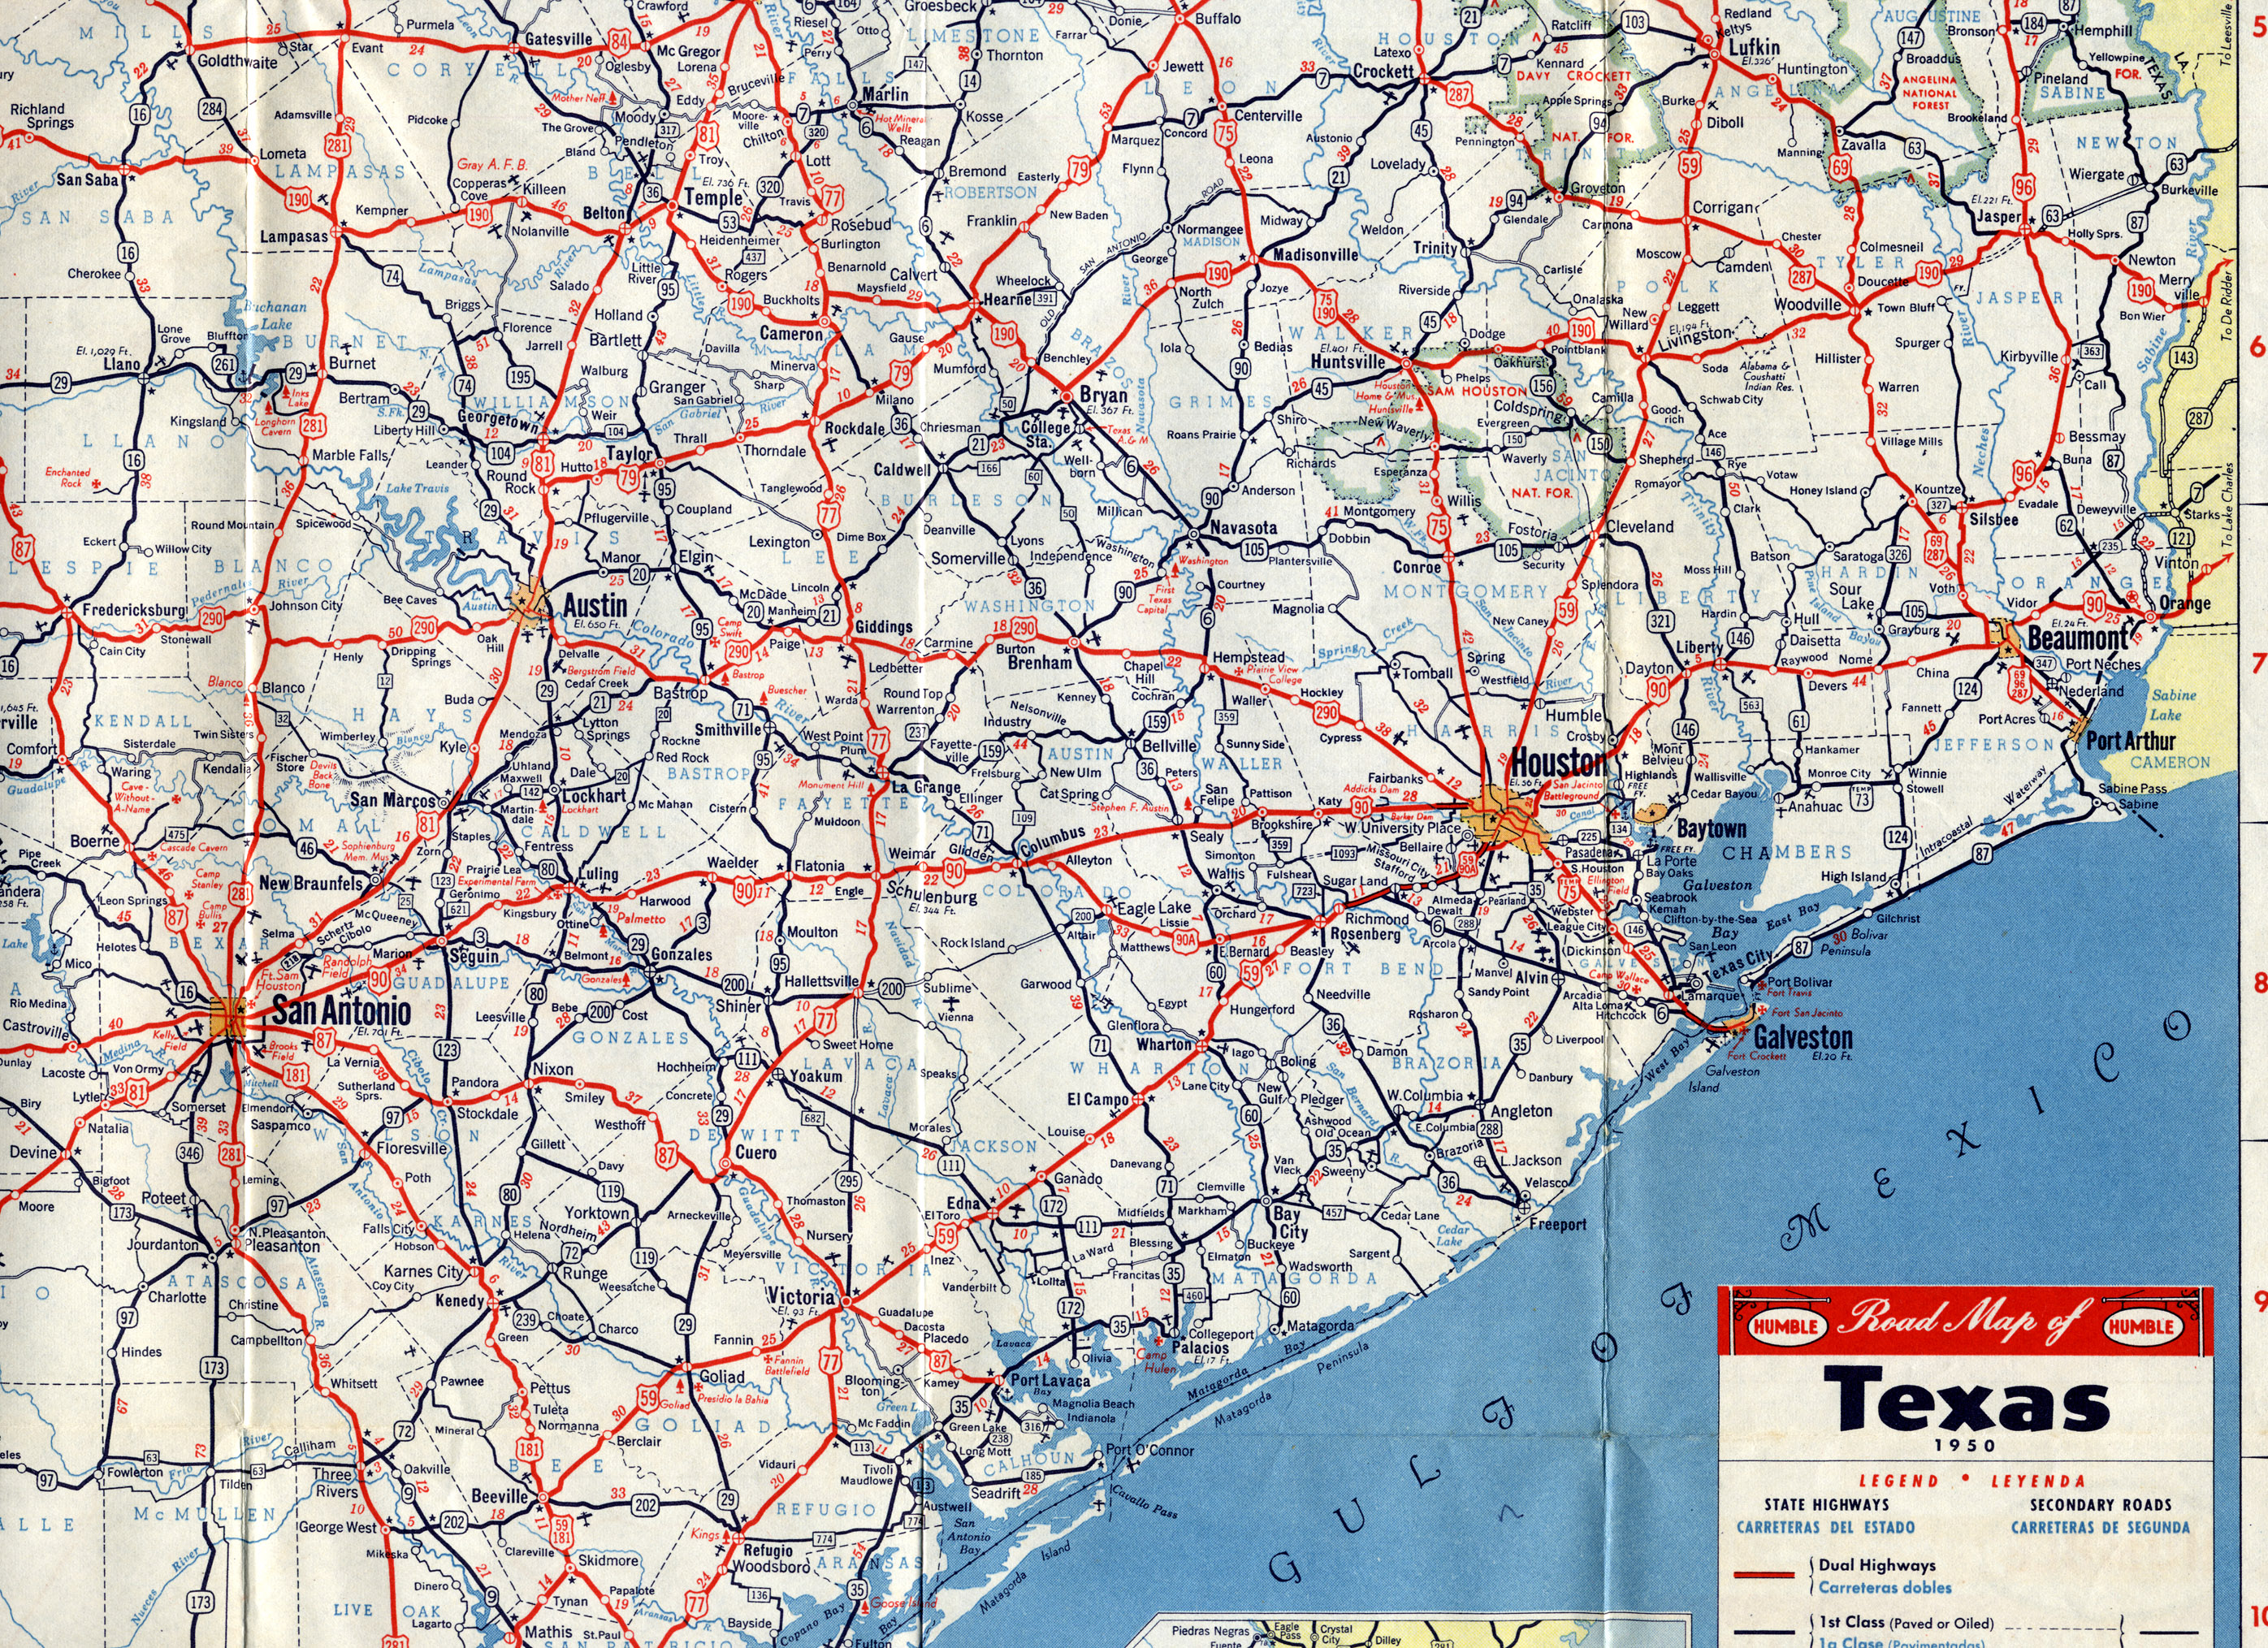 hy texas map images reverse search  tx road map. texas map old highway maps of texas what are the makings of the